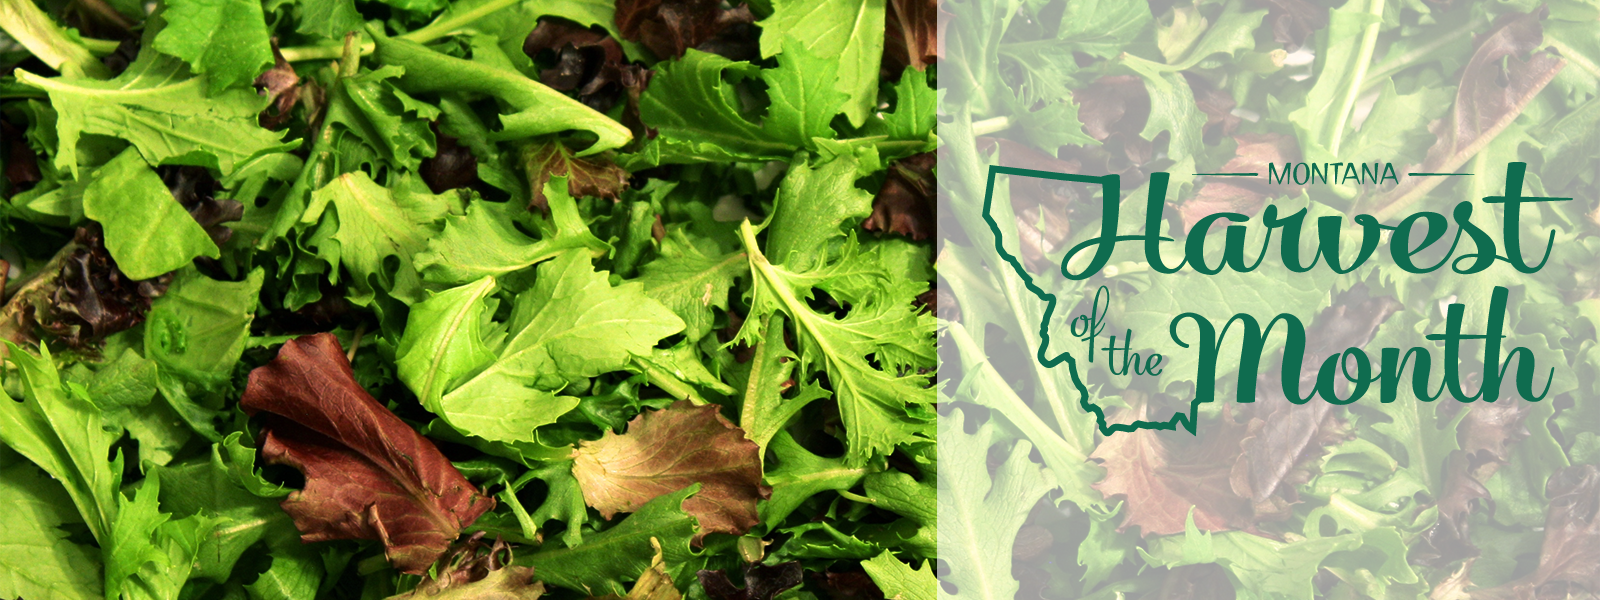 Leafy Greens are June's Harvest of the Month!